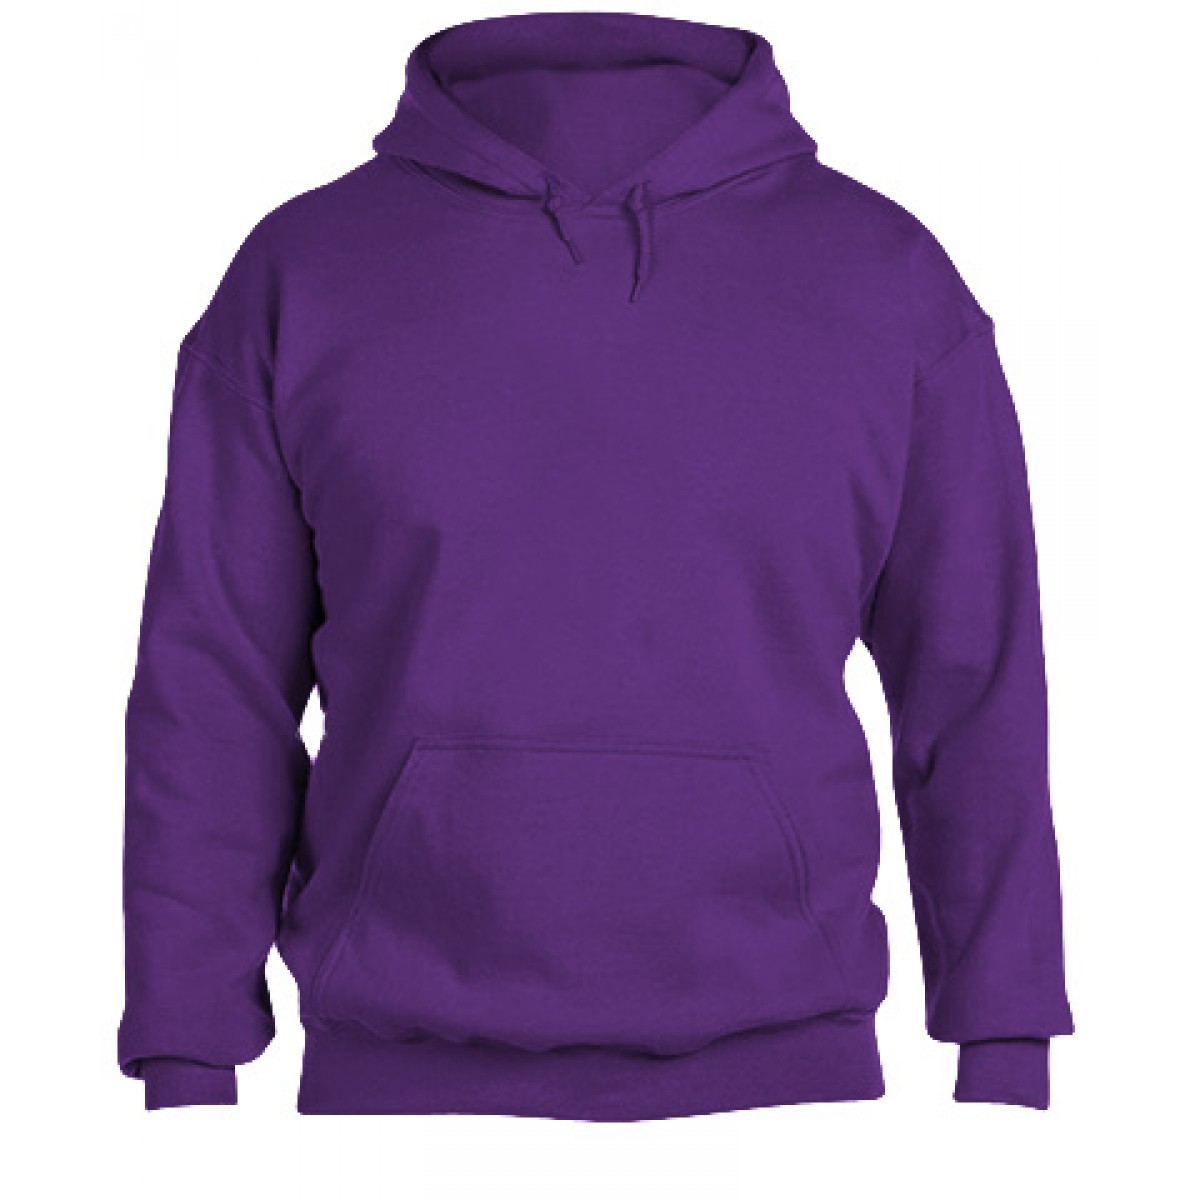 Hooded Sweatshirt 50/50 Heavy Blend -Purple-2XL